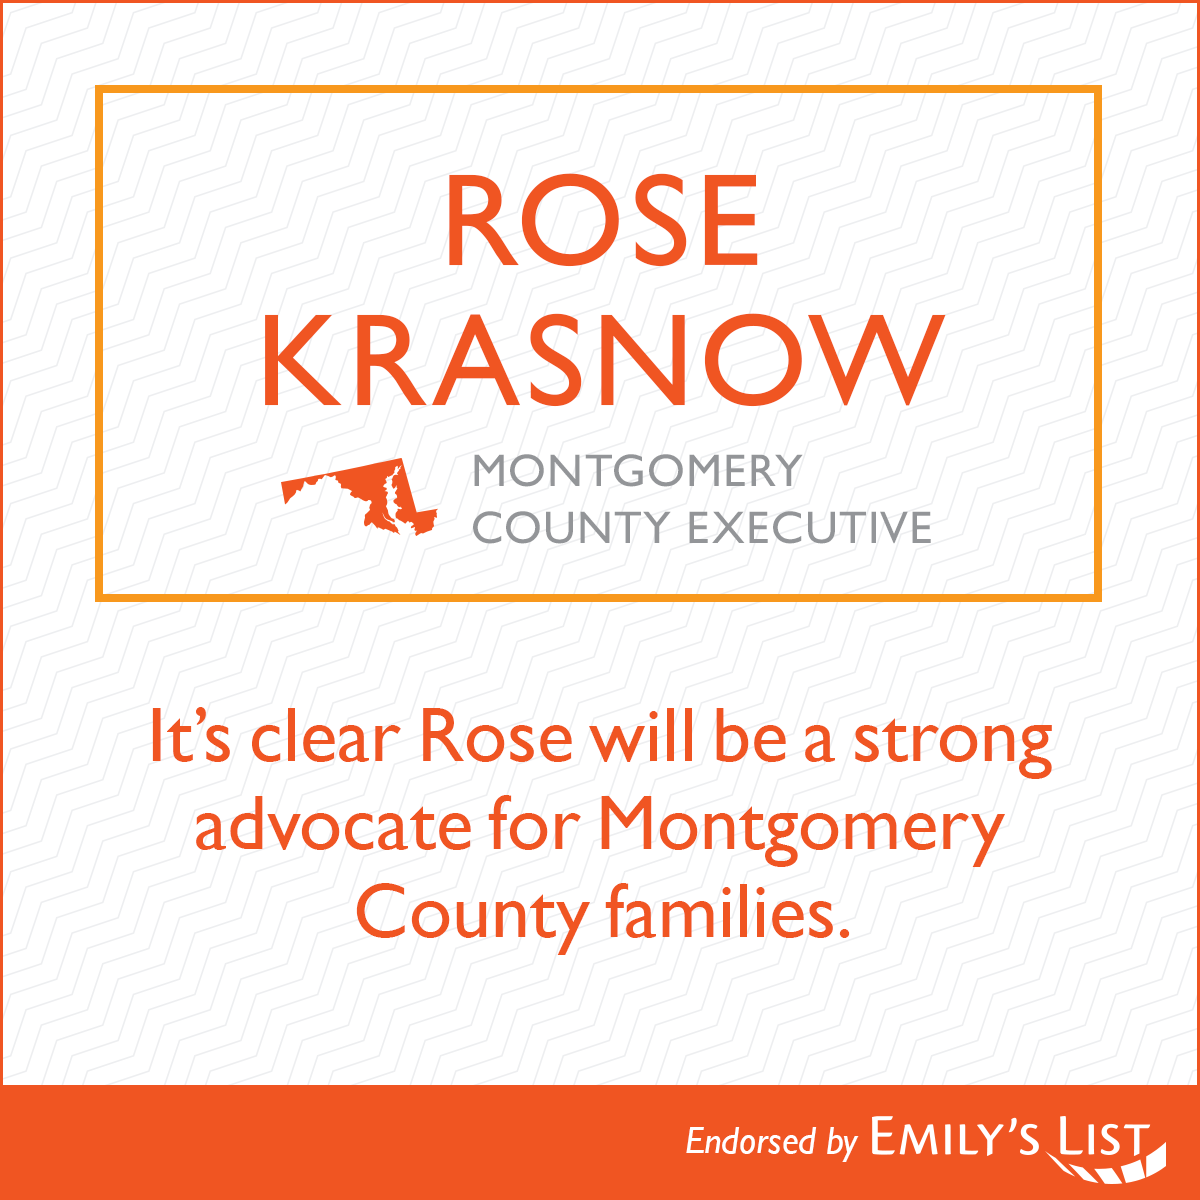 State-Local_Rose-Krasnow.png